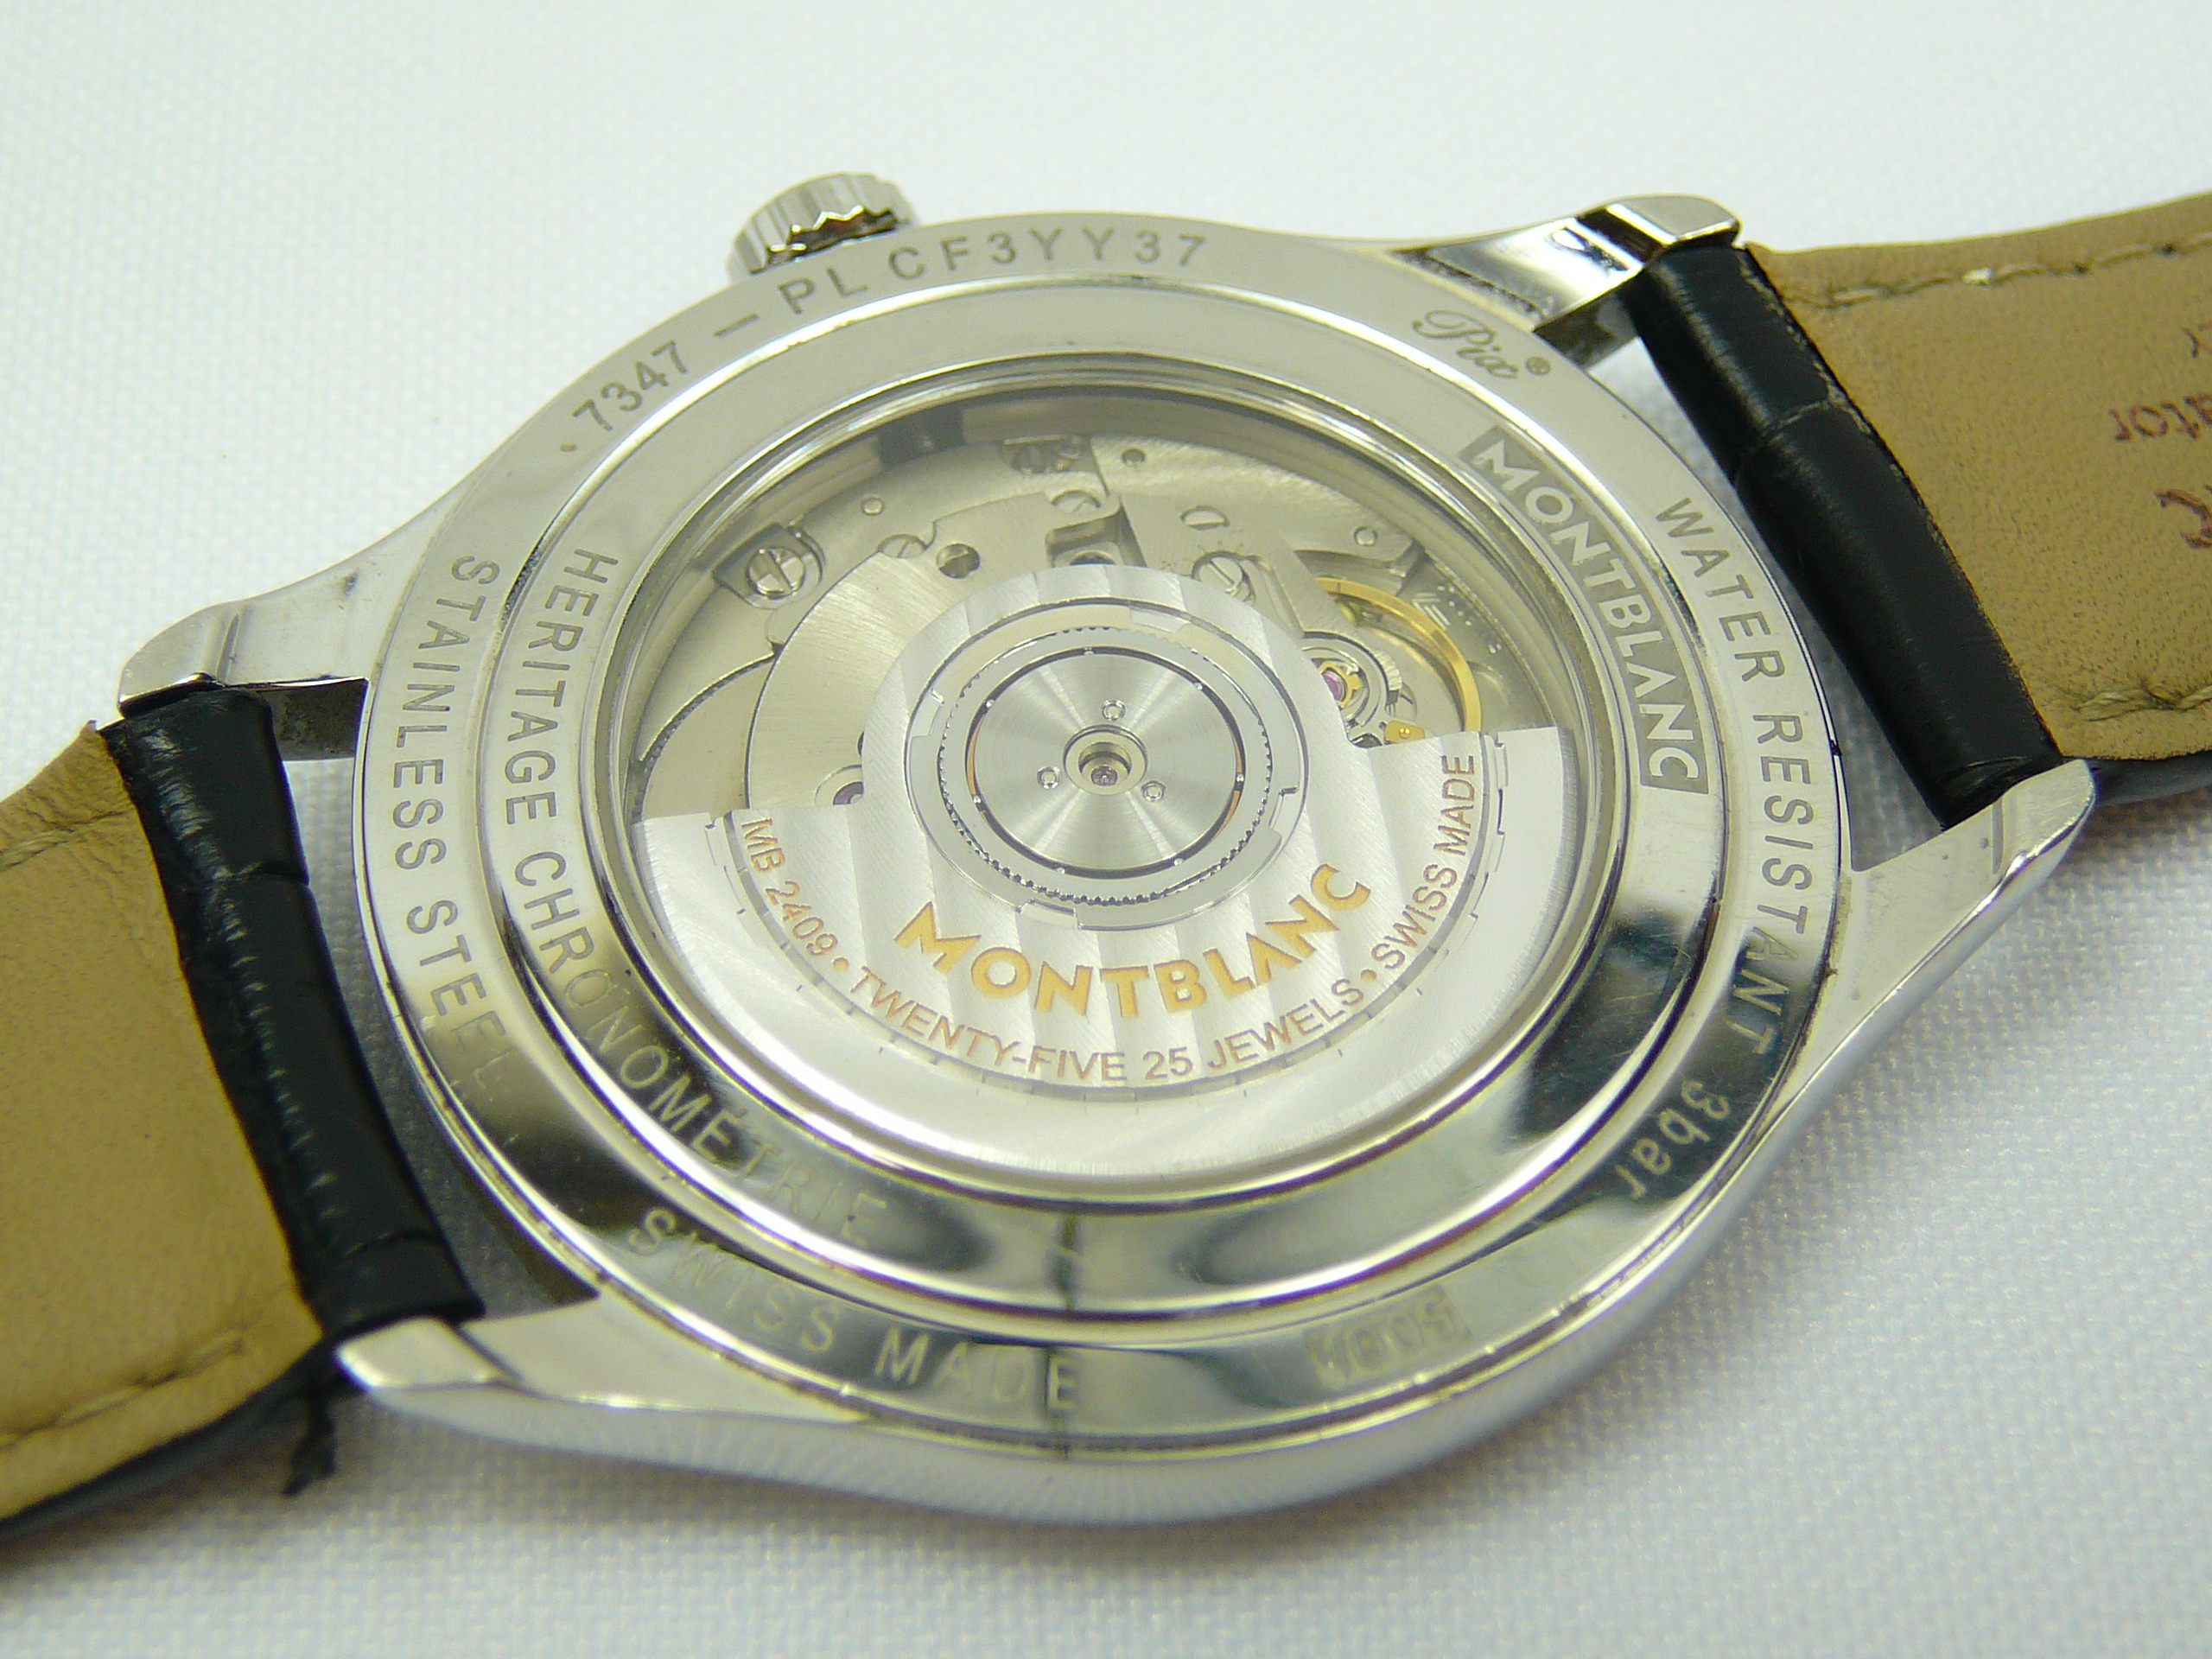 Gents Montblanc Wrist Watch - Image 3 of 3